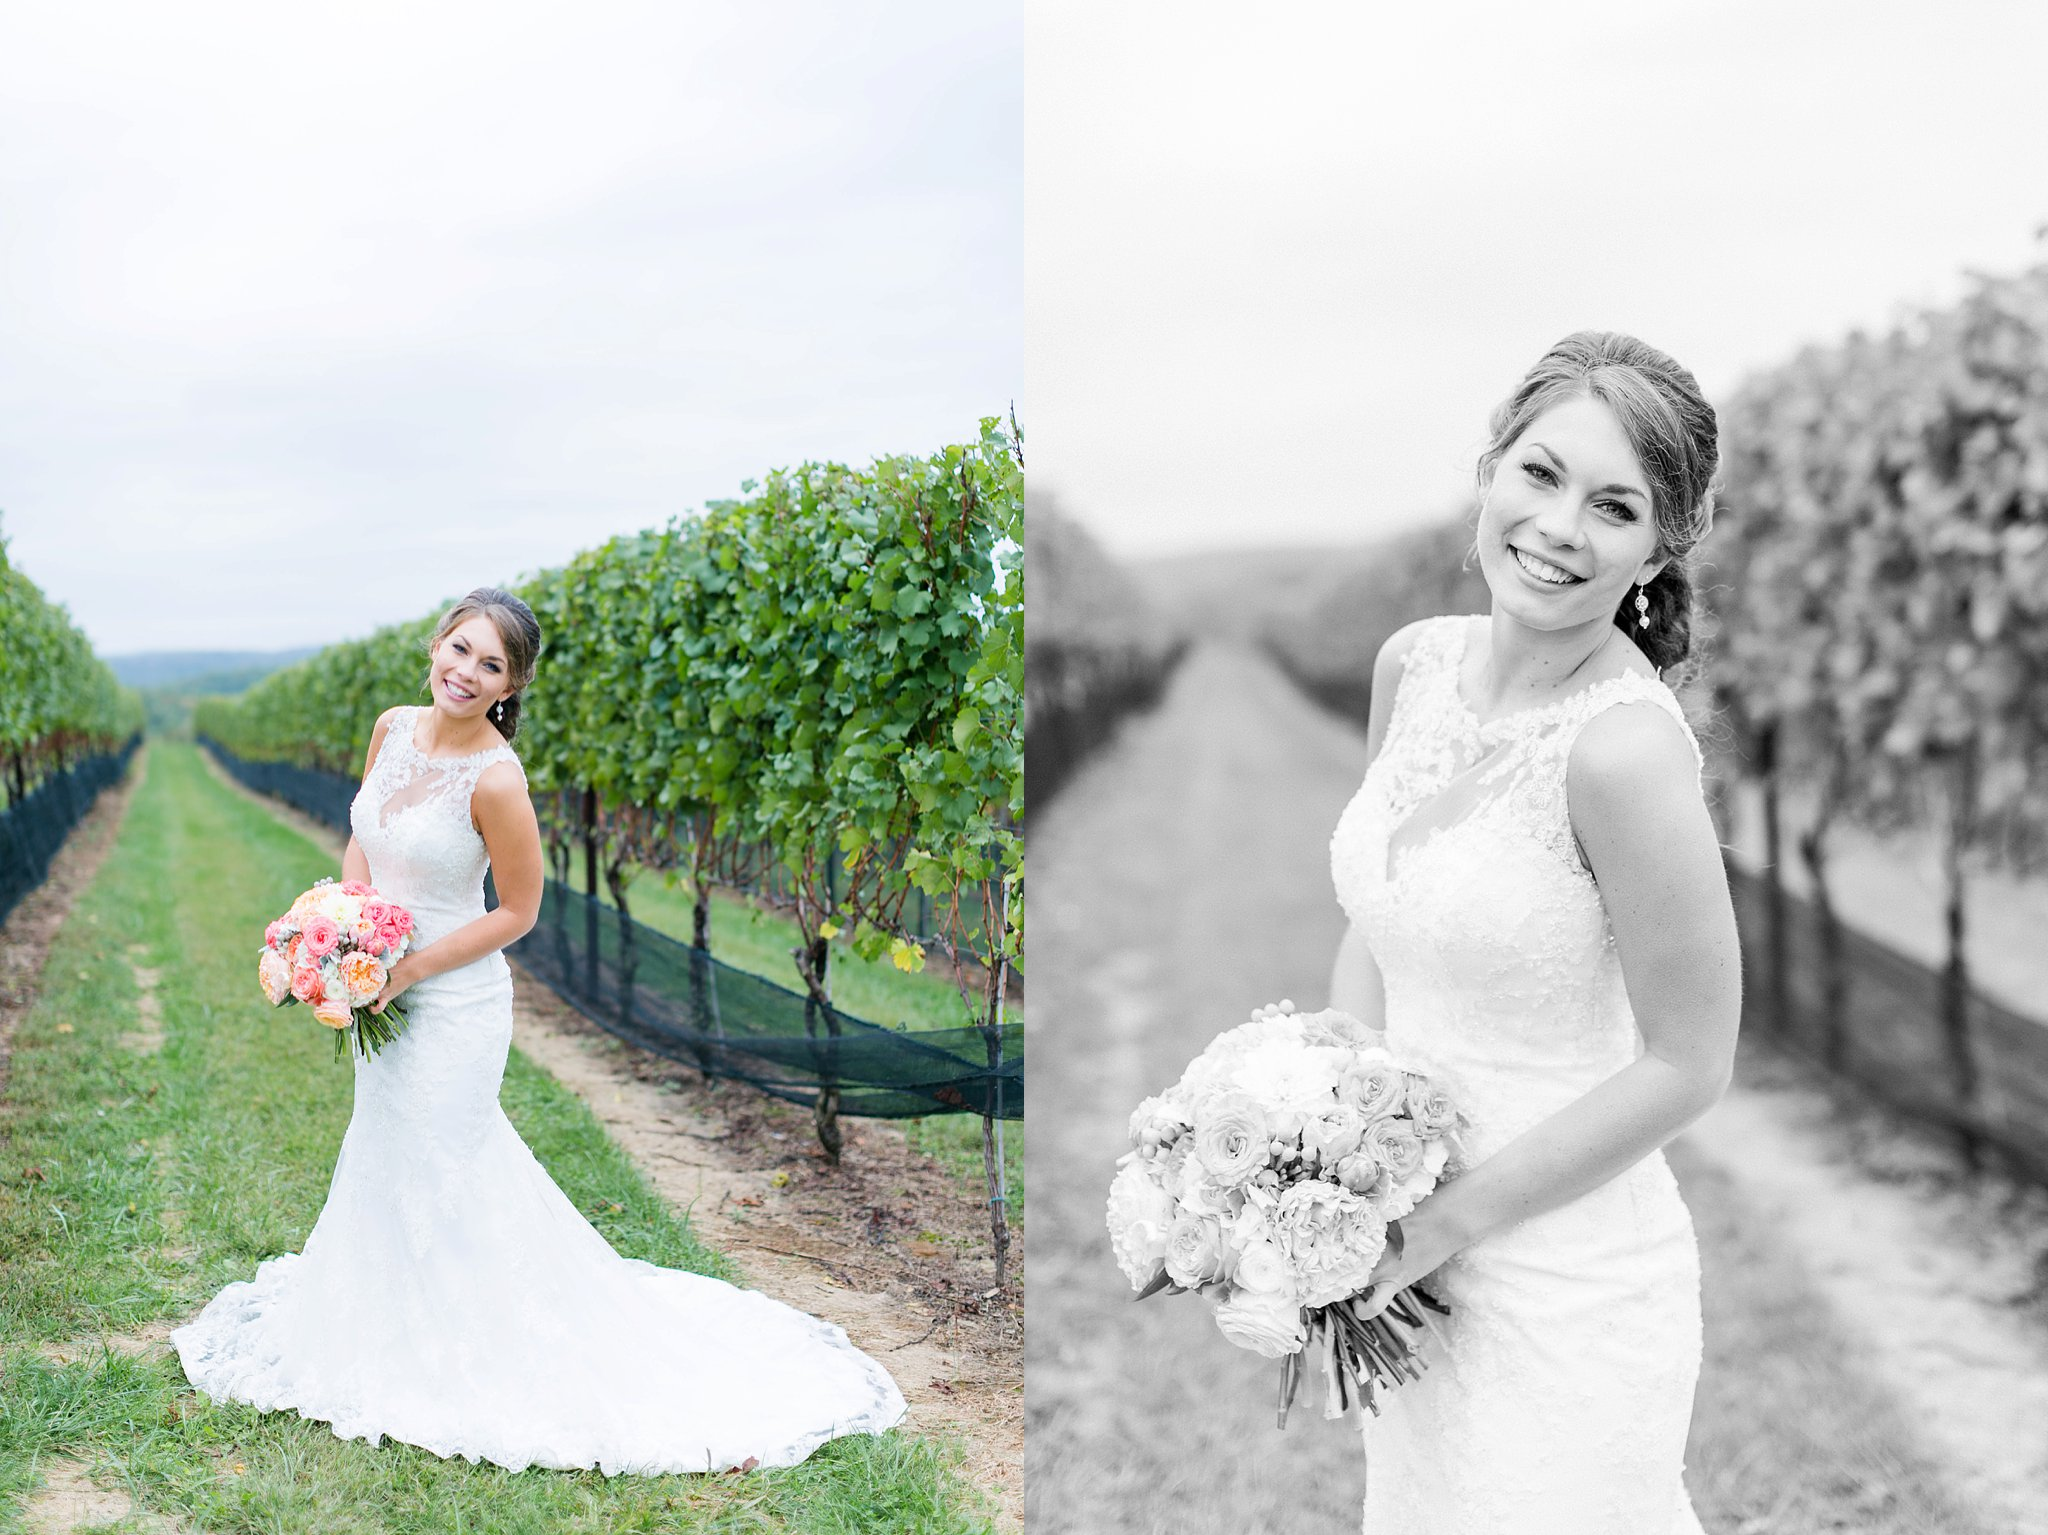 Stone Tower Winery Wedding Photos Virginia Wedding Photographer Megan Kelsey Photography Sam & Angela-195.jpg